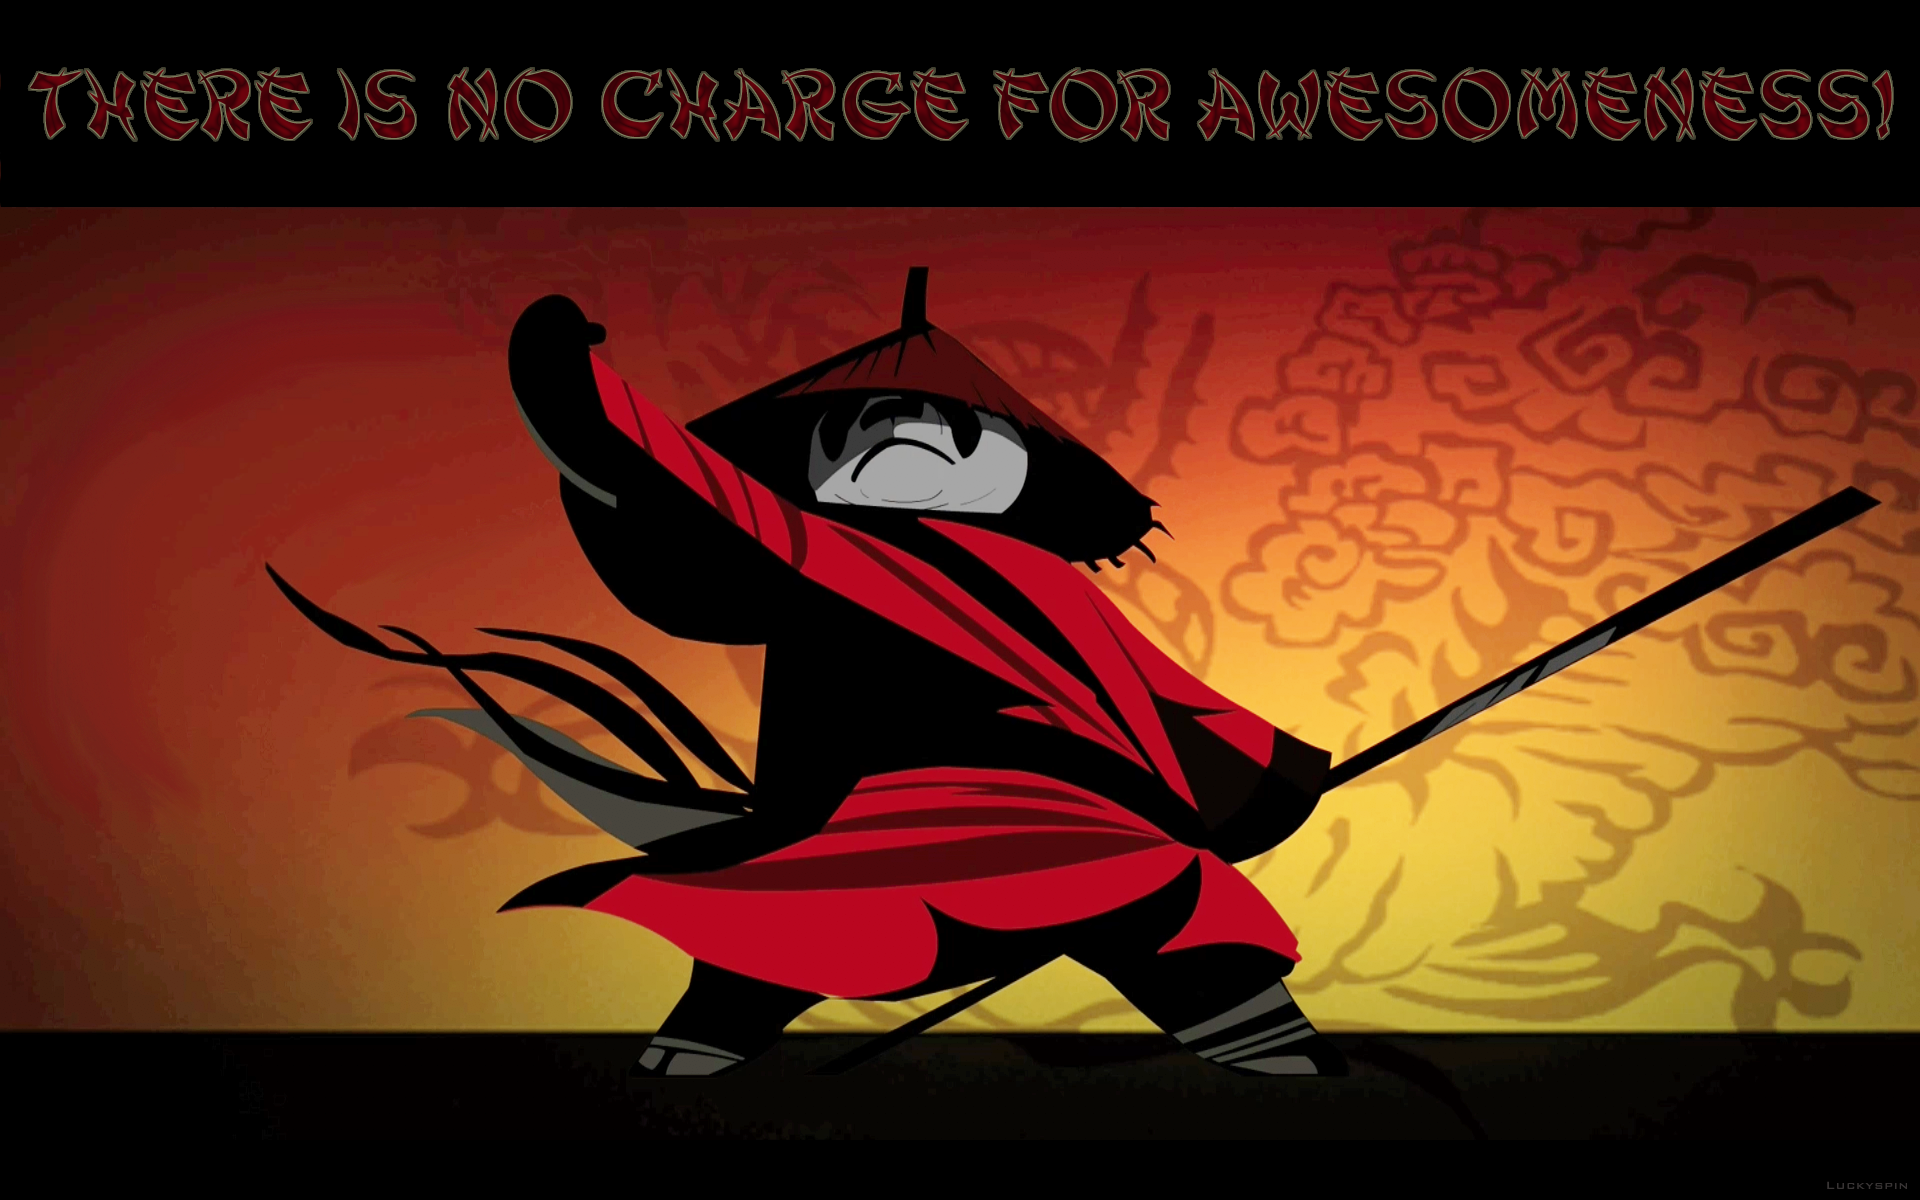 There Is No Charge For Awesomeness